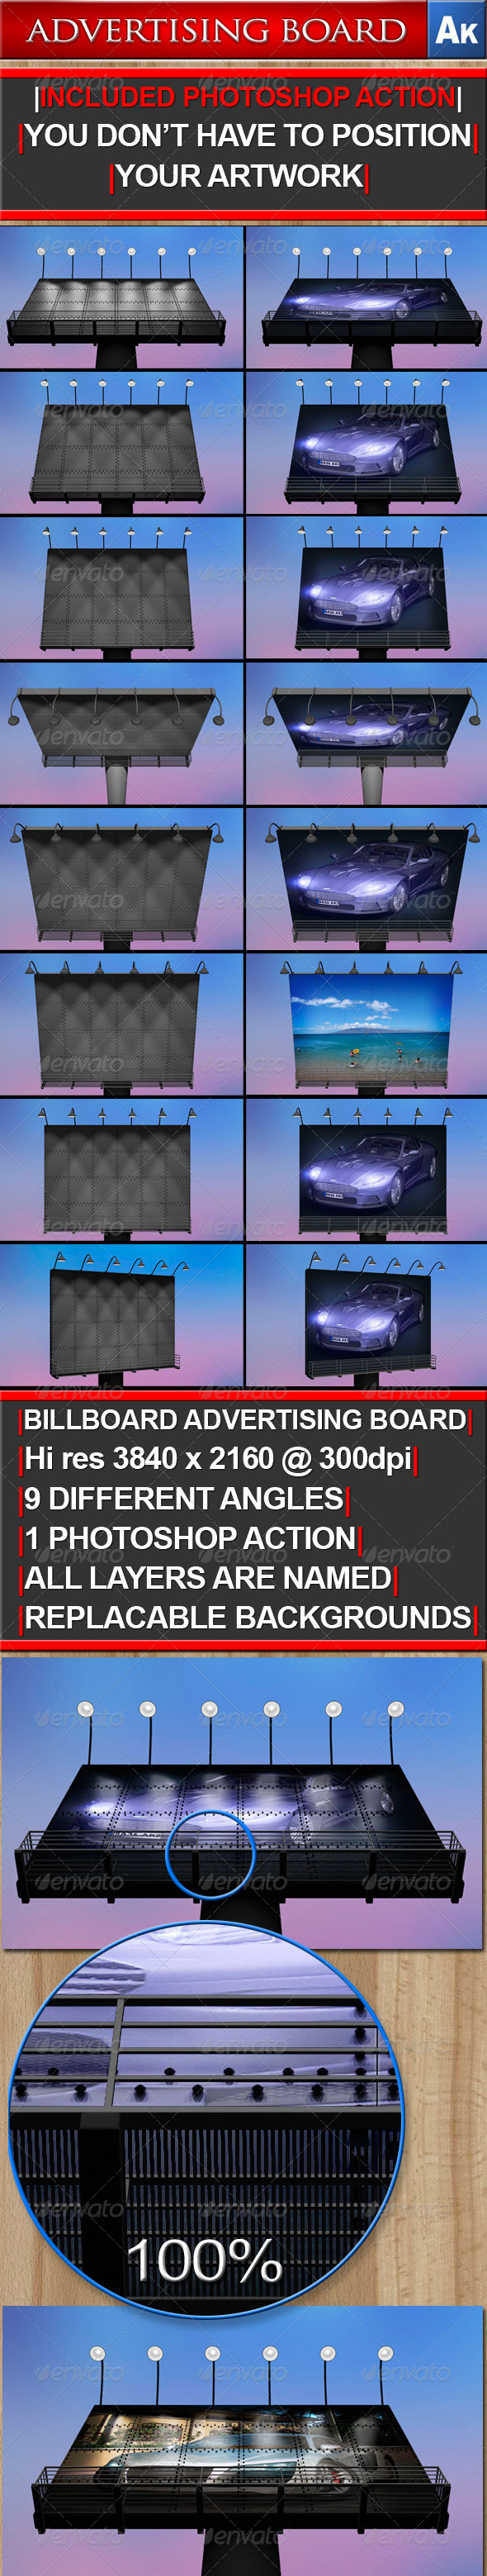 Billboard, Advertising Board - Signage Print